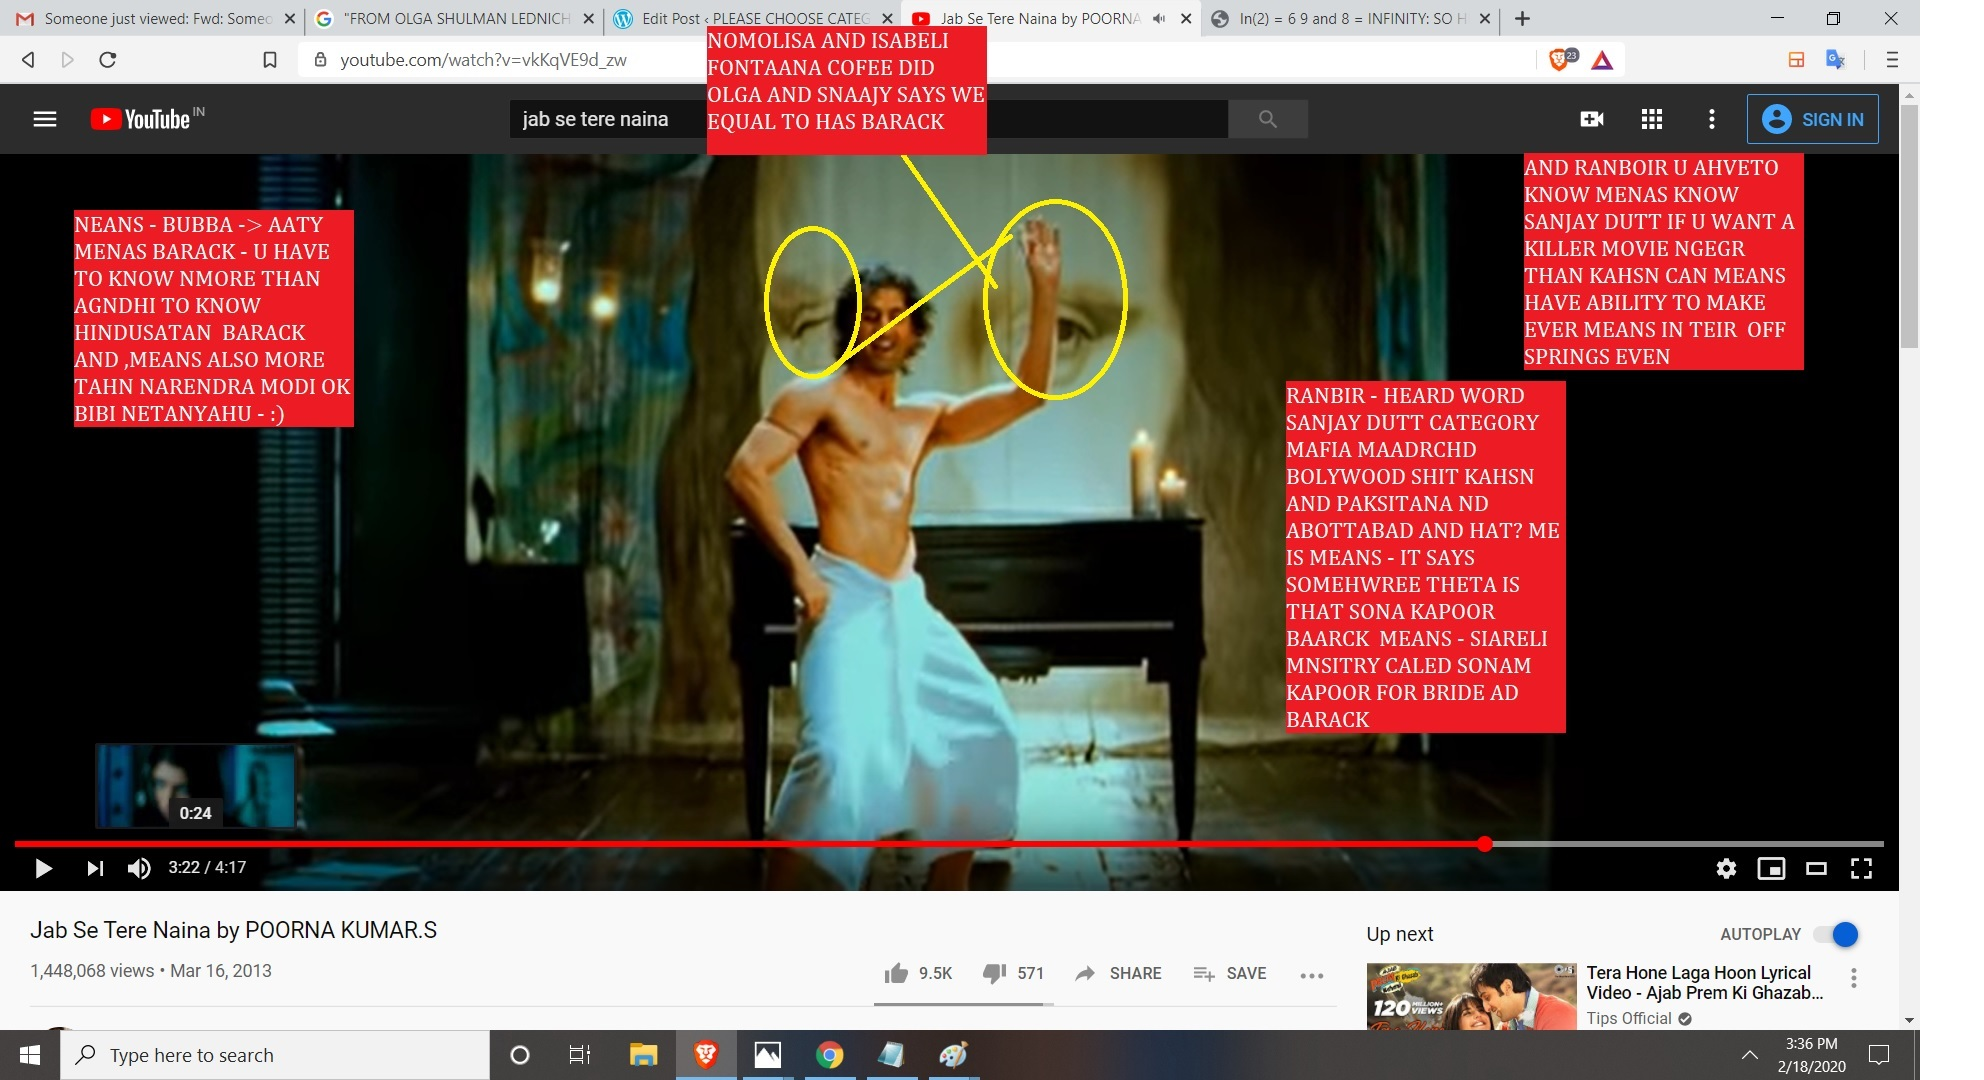 NOMOLISA AND MONALISA DIAGRAMS SEEN MOTHERFUKERS AND WHAT DO U THINKS OLGA AND SANJAY DUTT AND SONAM KAPOOR AND ANIL KAPOOR AND MODI AND SNAJAY DUTT